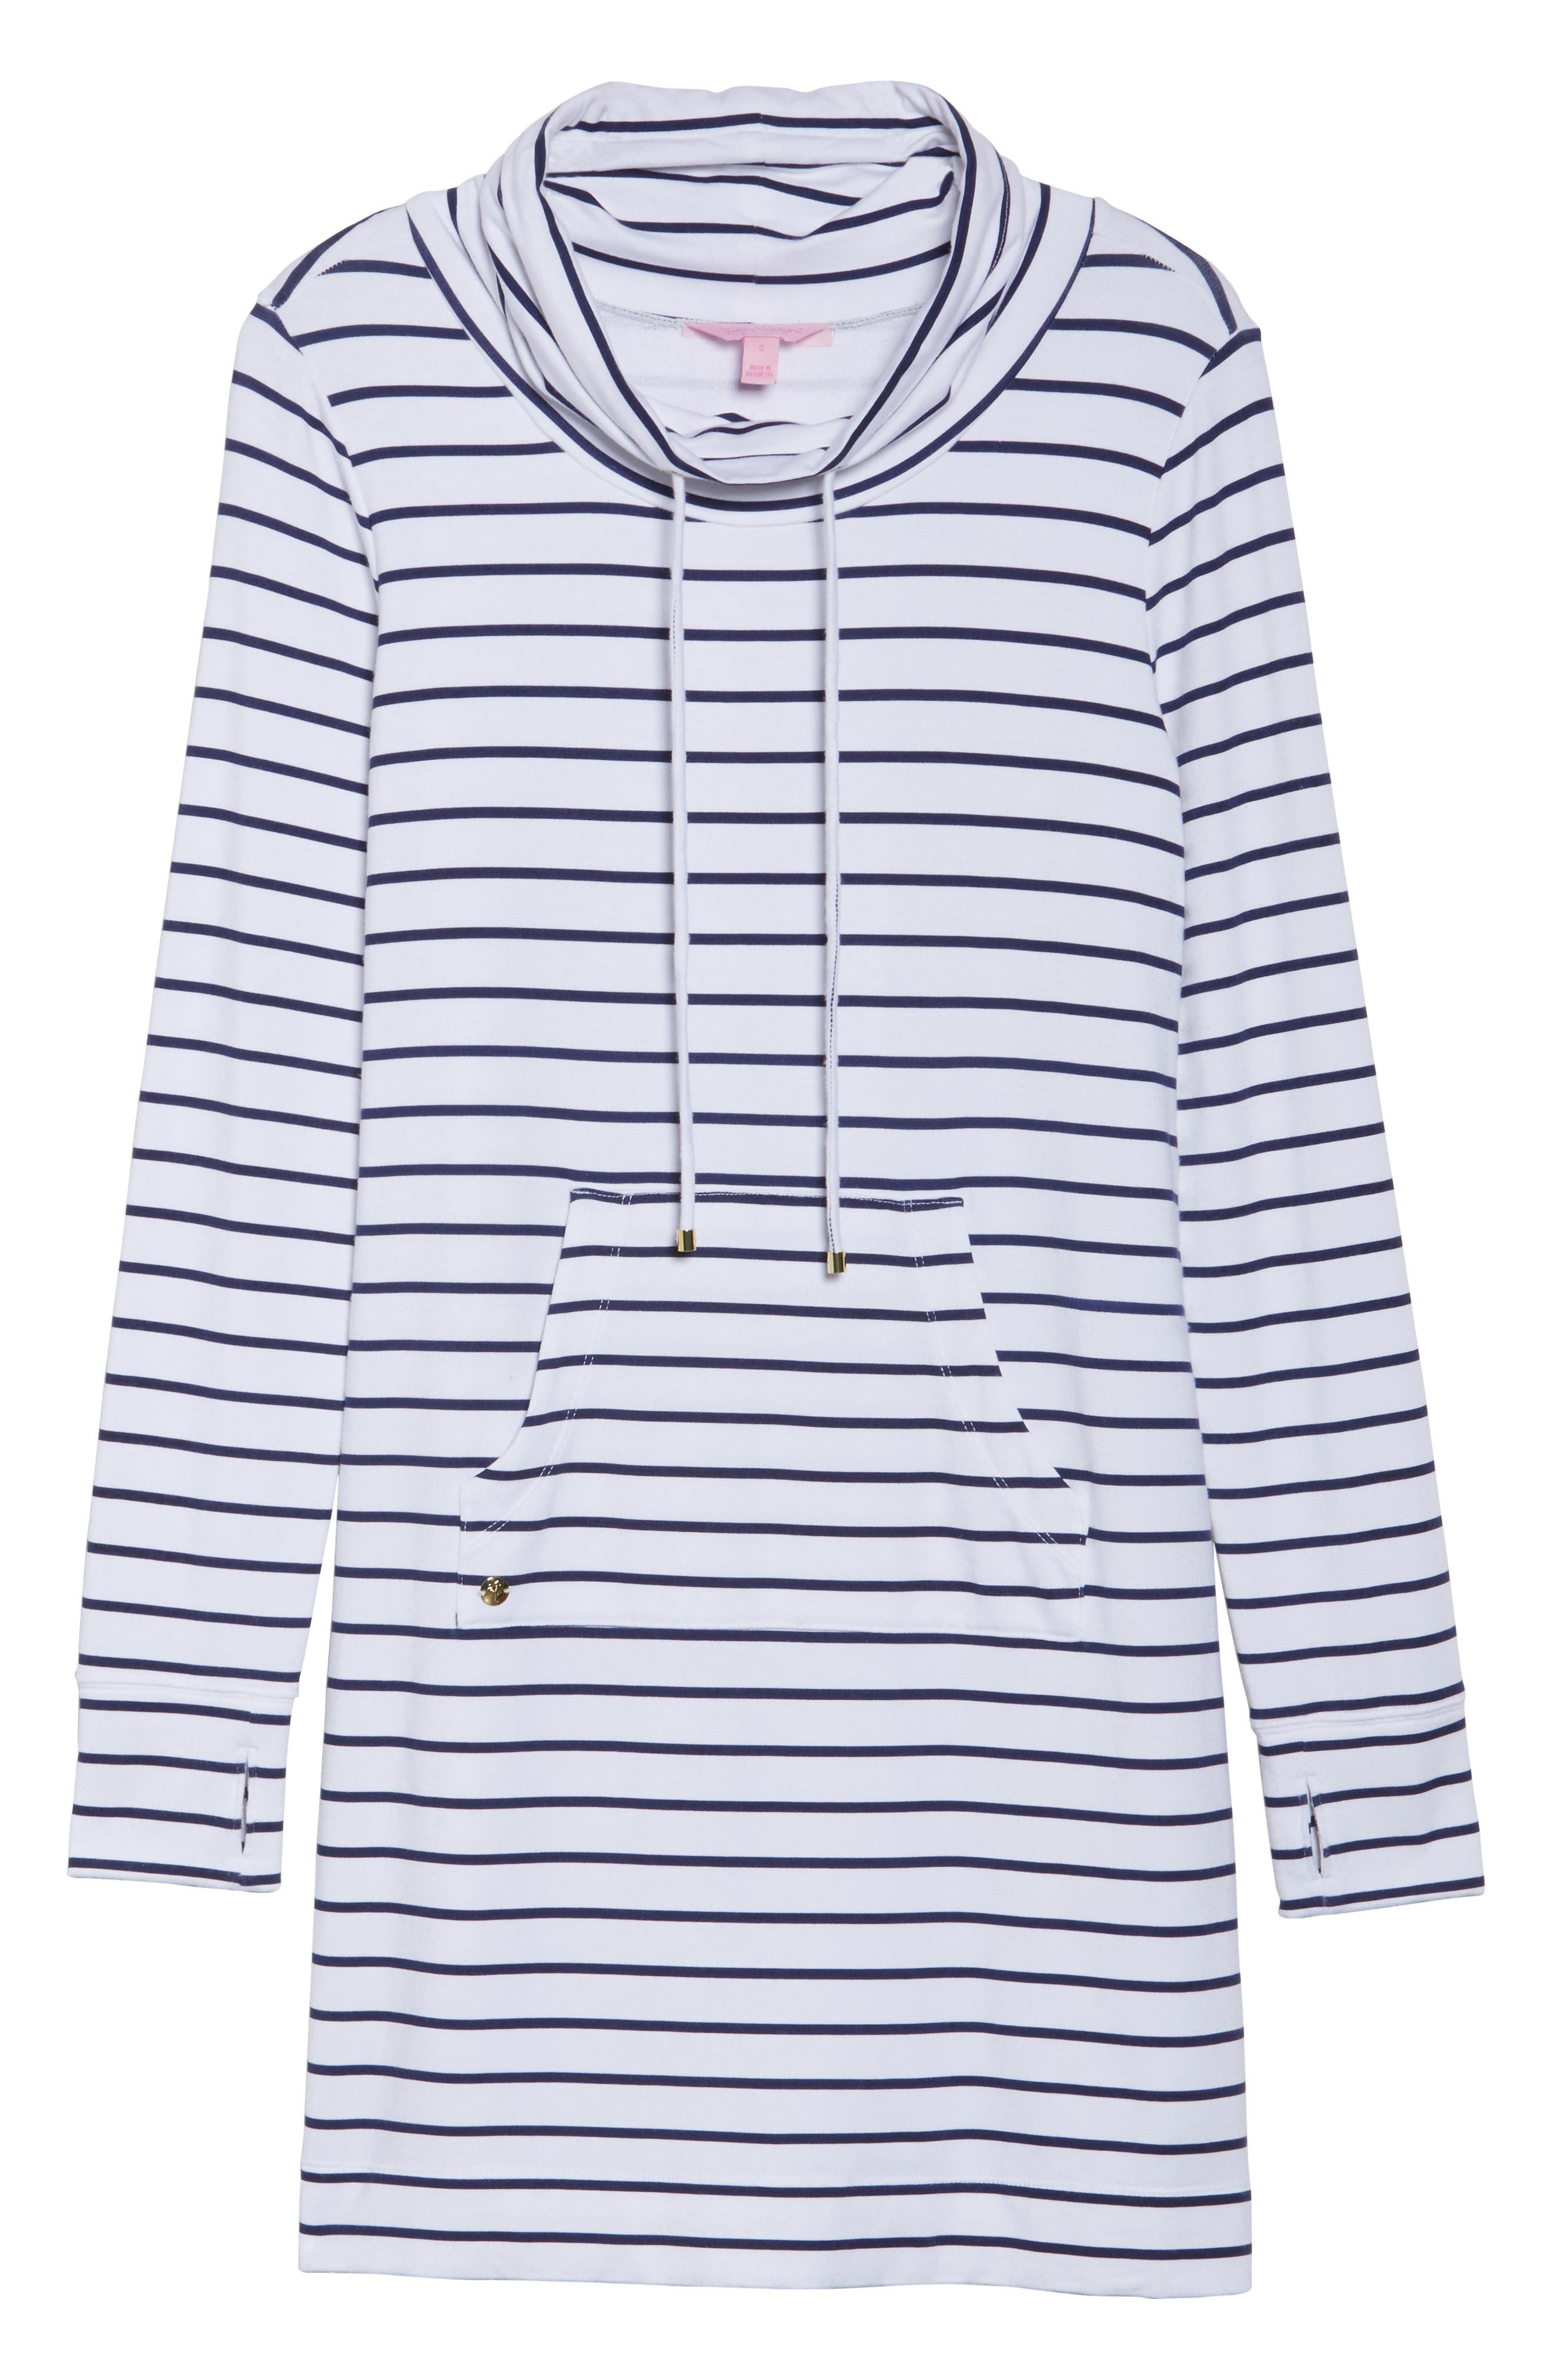 Hilary UPF 50+ Dress,                             Alternate thumbnail 6, color,                             Bright Navy Mystic Stripe